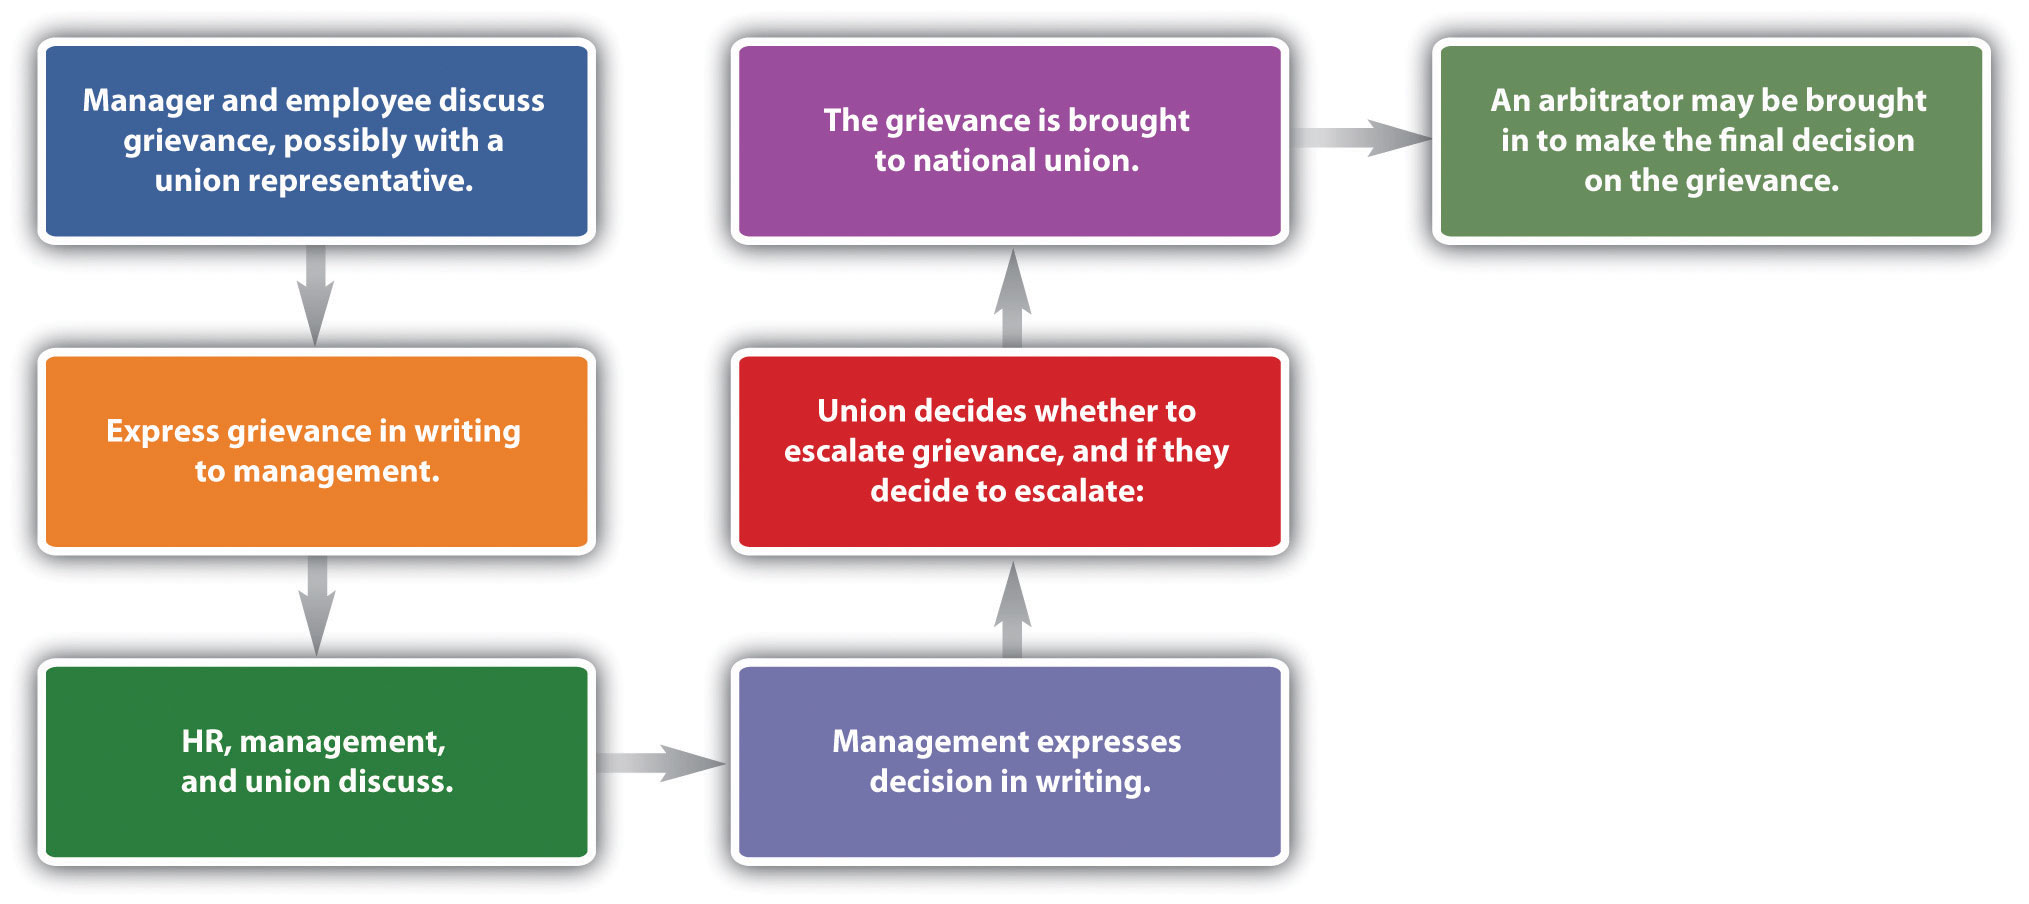 A Sample Grievance Process in order: manager and employee discuss grievance, possibly with a union representative; express grievance in writing to management; HR, management, and union discuss; management expresses decision in writing; union decides whether to escalate grievance, and if they decide to escalate; the grievance is brought to national union; an arbitrator may be brough in to make the final decision on the grievance.